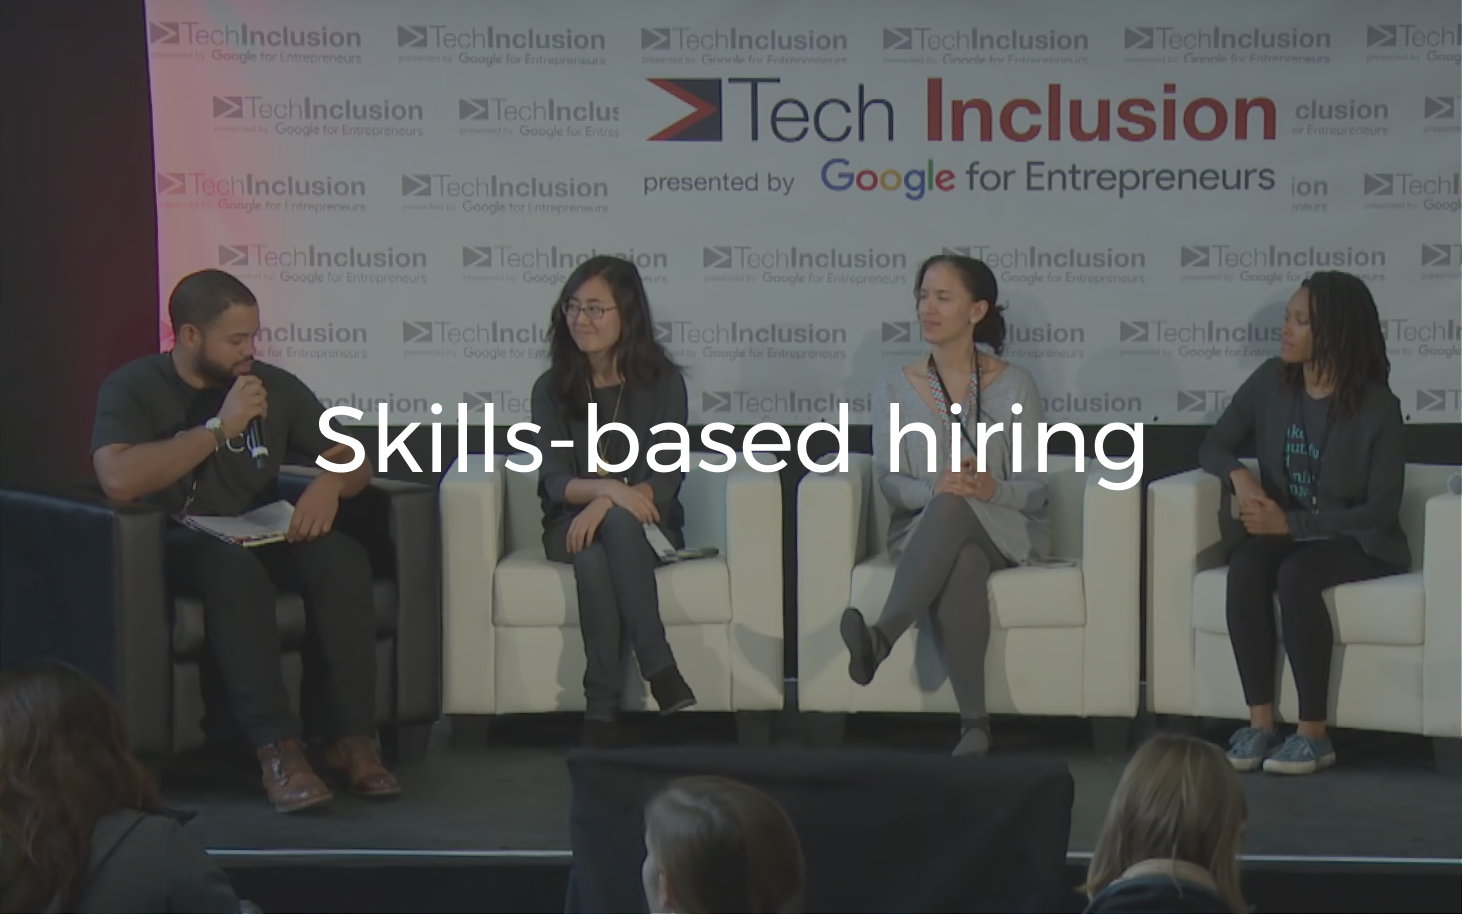 How companies can focus on skills, not pedigree, at Tech Inclusion, the largest D&I-related conference.